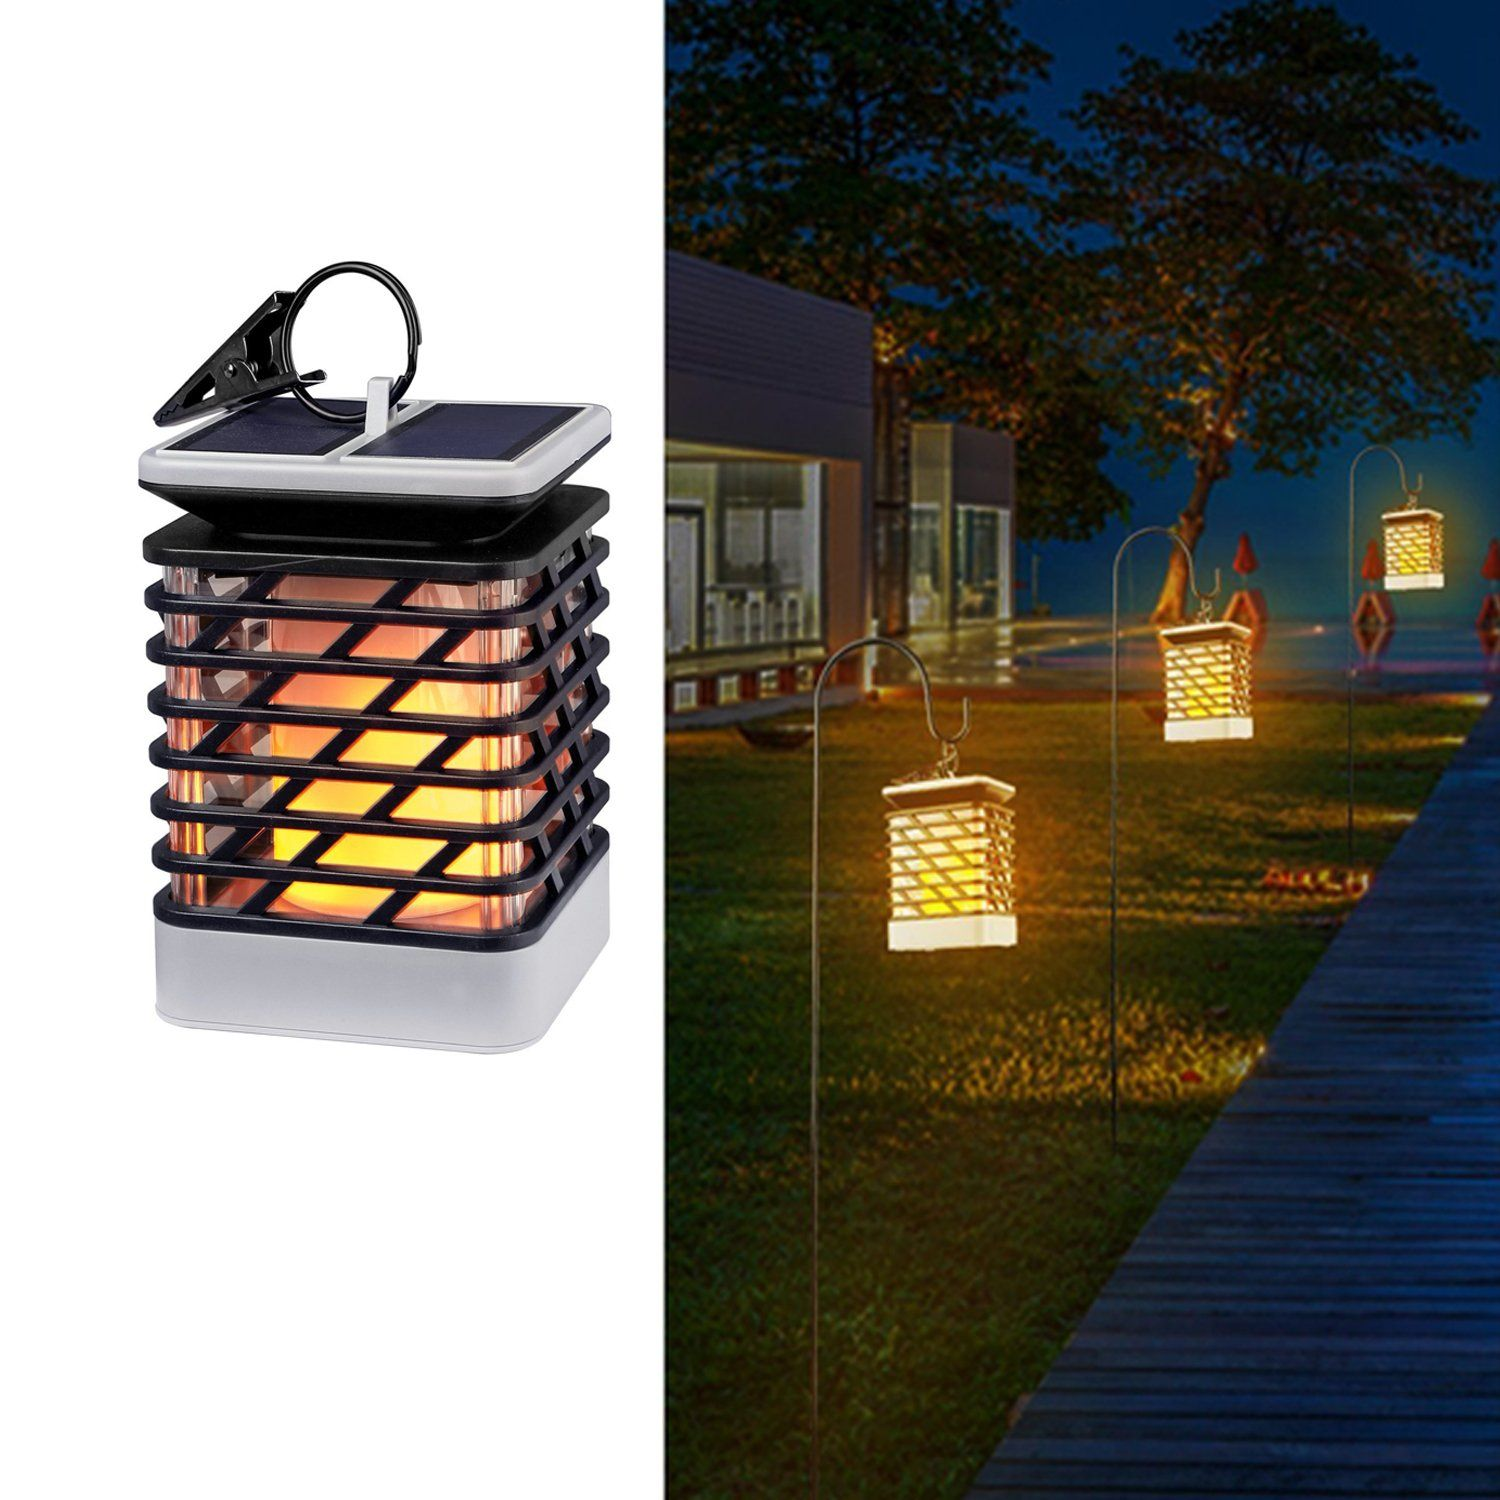 Solar Lights Outdoor Espier Led Flickering Flame Torch Ed Lantern Hanging Decorative Atmosphere Lamp